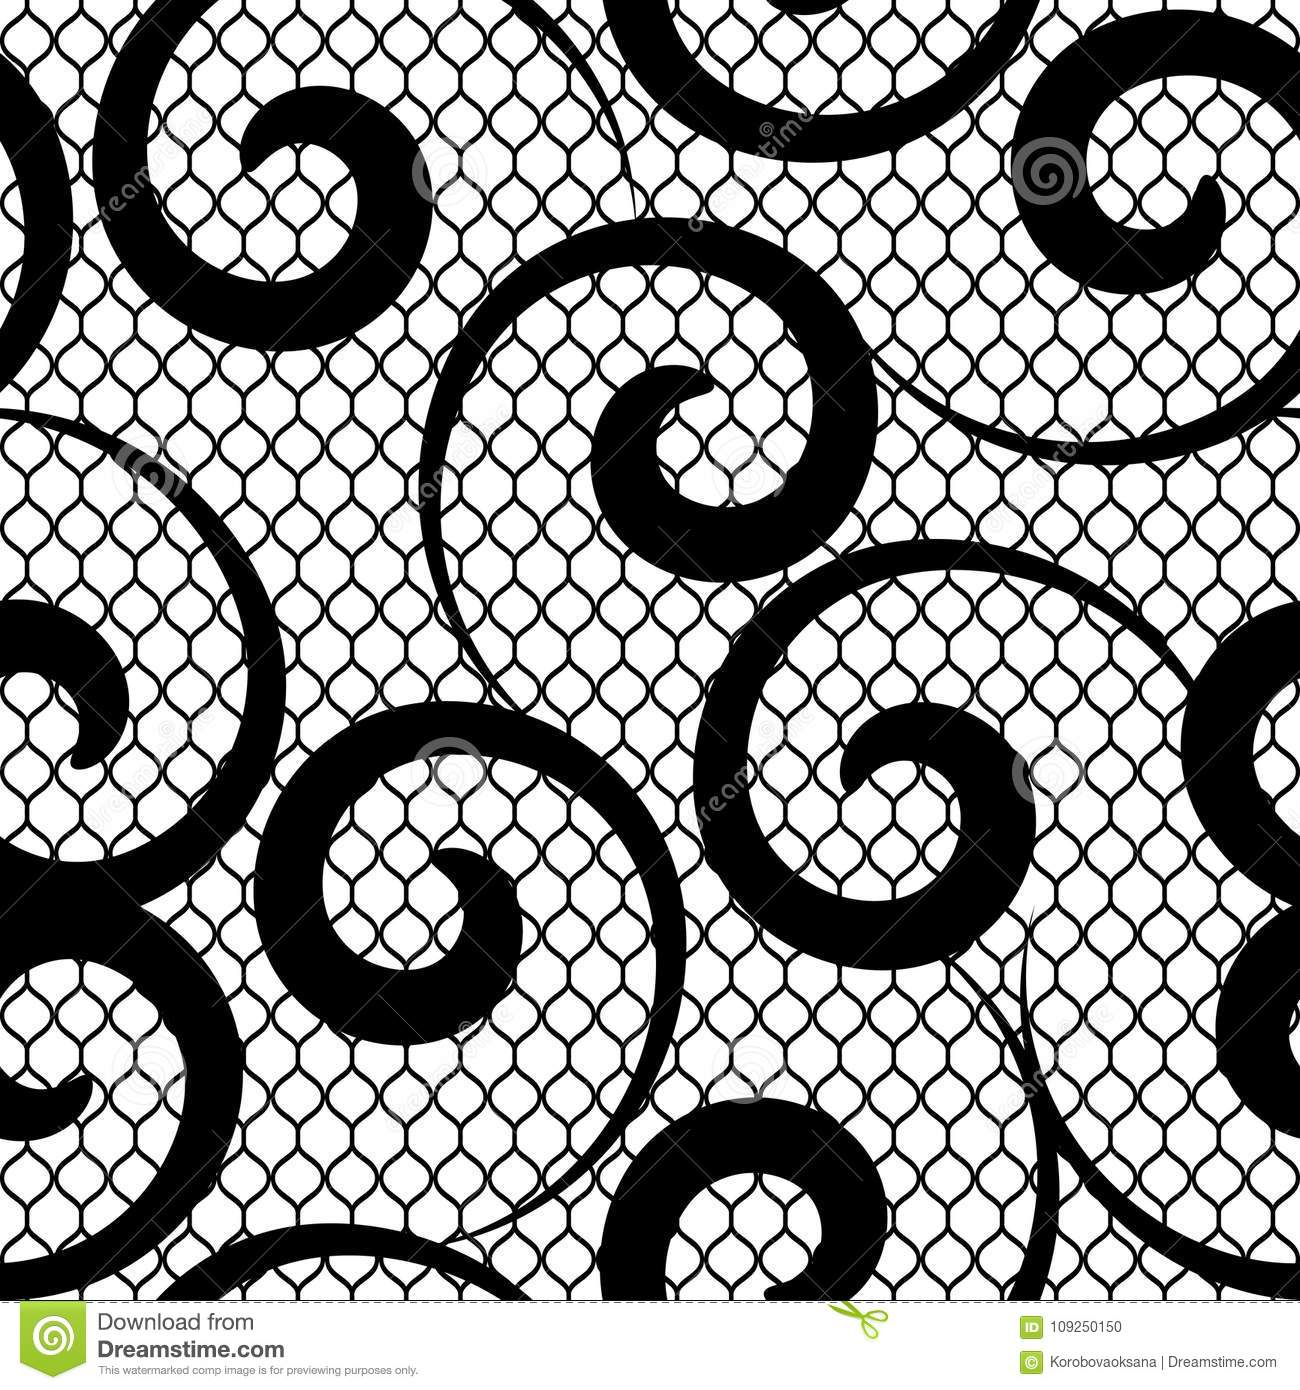 Alencon French Seamless Lace Vector Pattern Openwork Ornament Textile  Embroidery ⬇ Vector Image by © RedKoala   Vector Stock 281468806   1390x1300